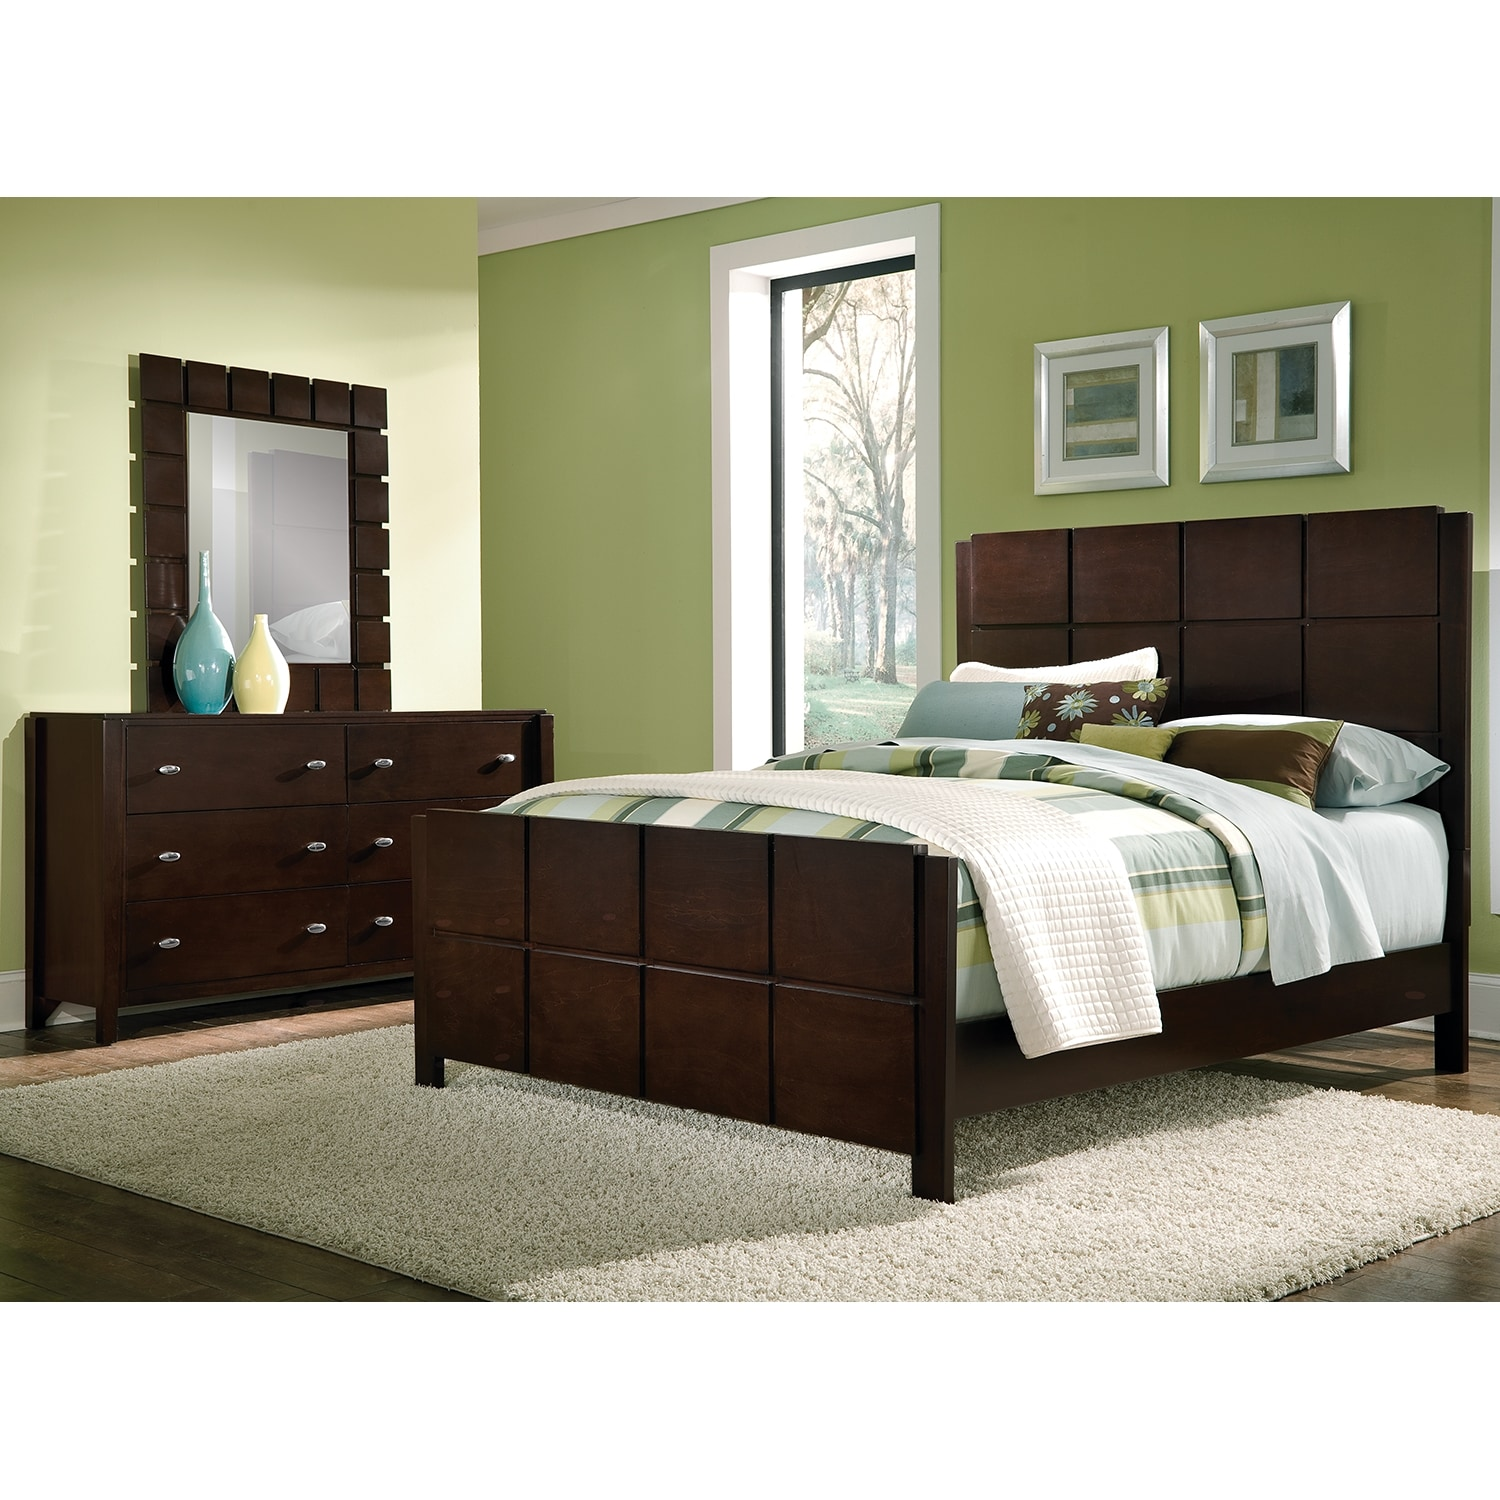 Mosaic 5 piece king bedroom set dark brown american for Bedroom sets with mattress included